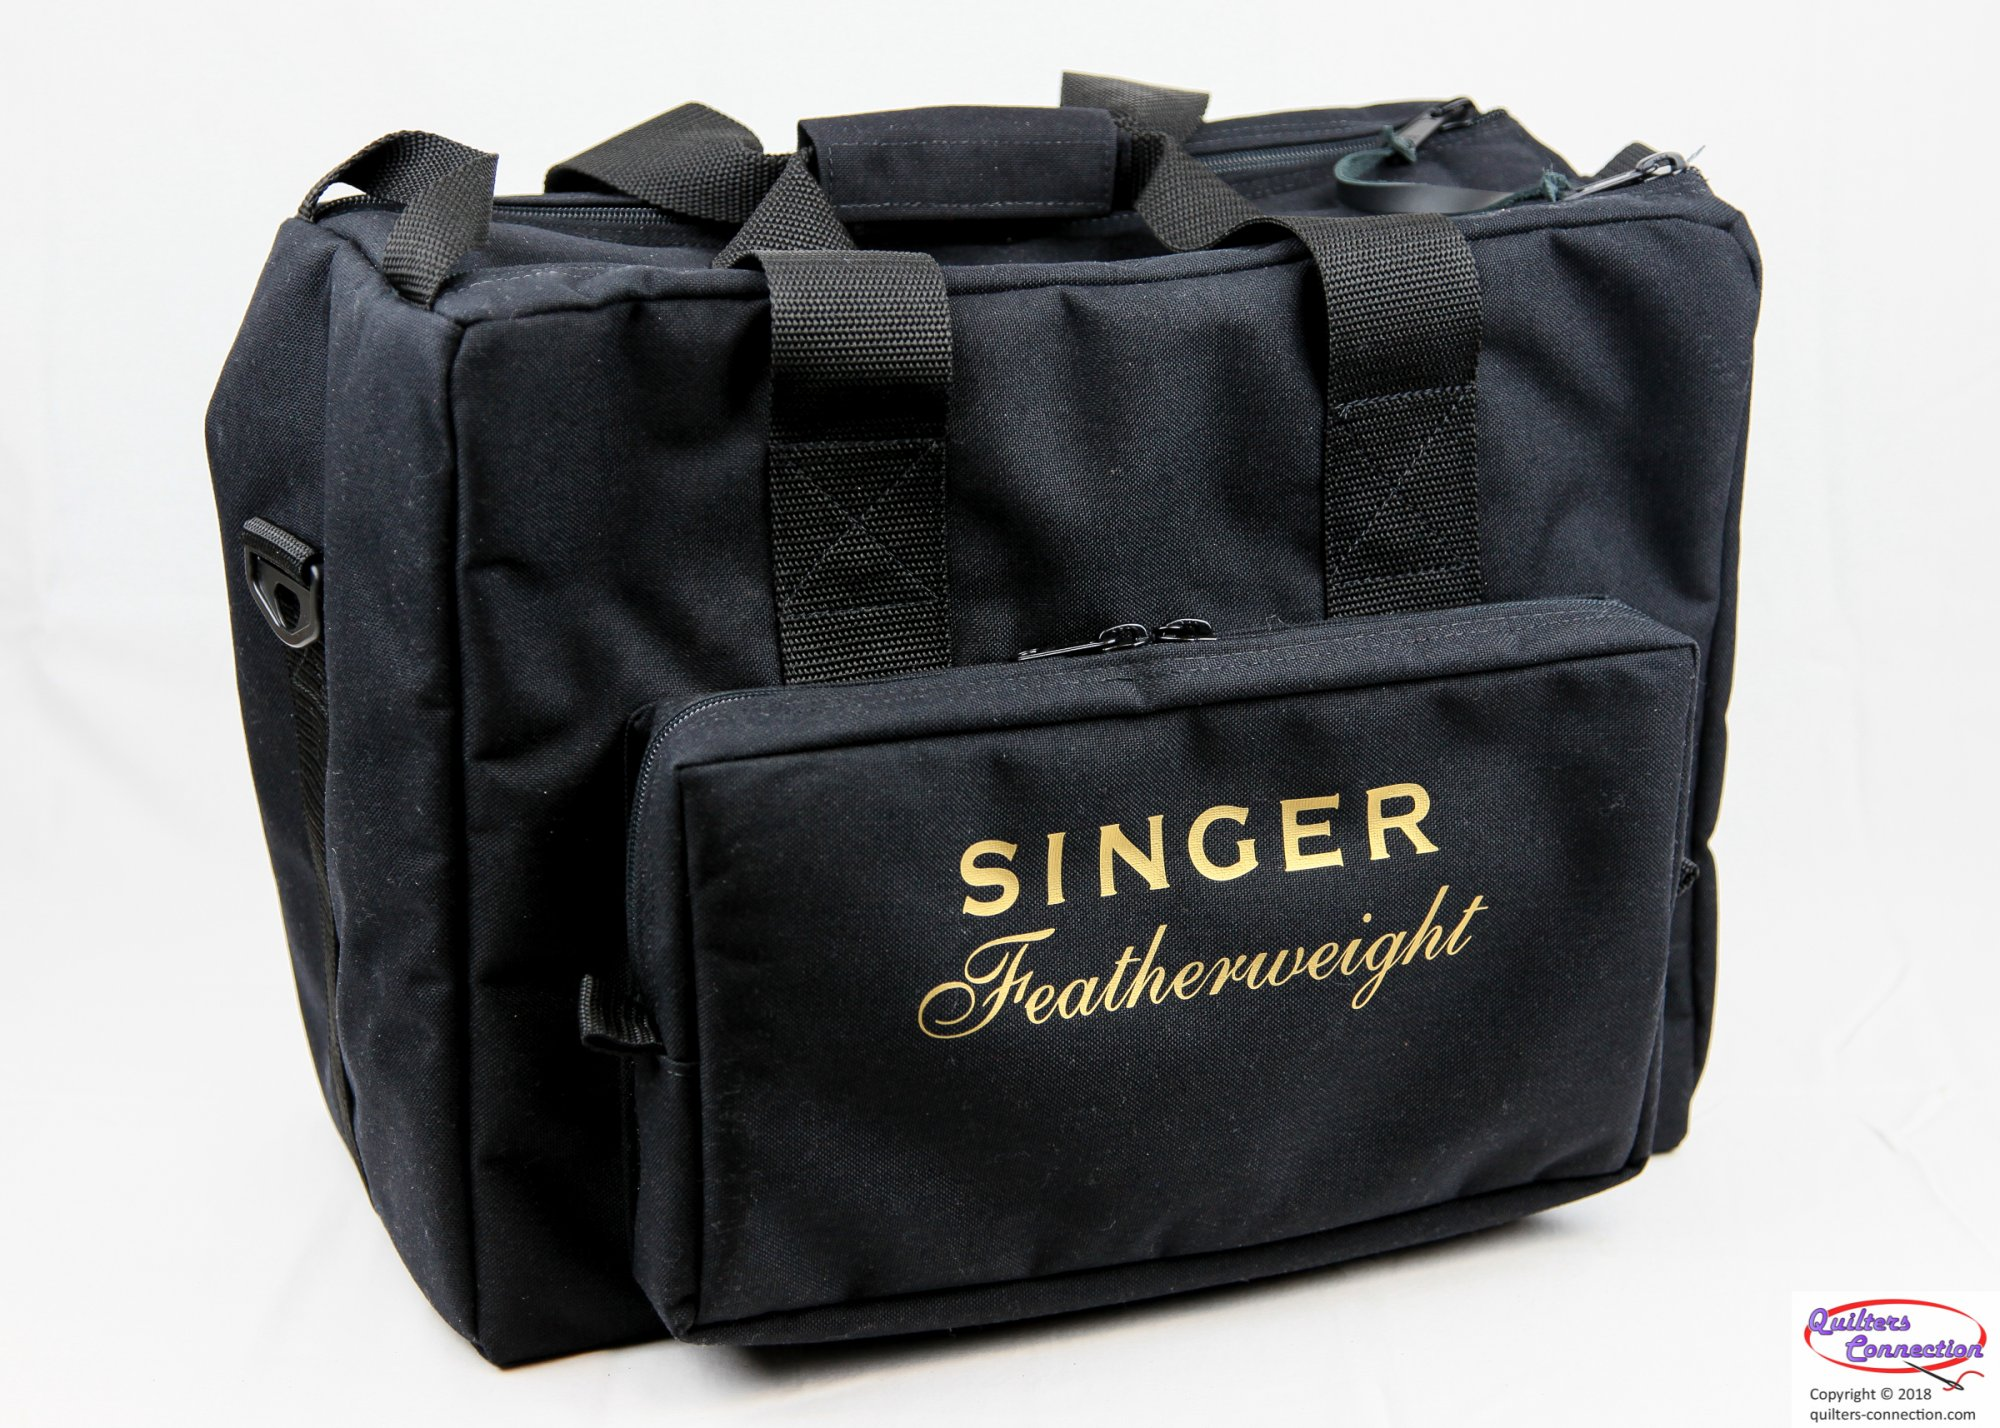 Singer Featherweight Logo for Carry Case